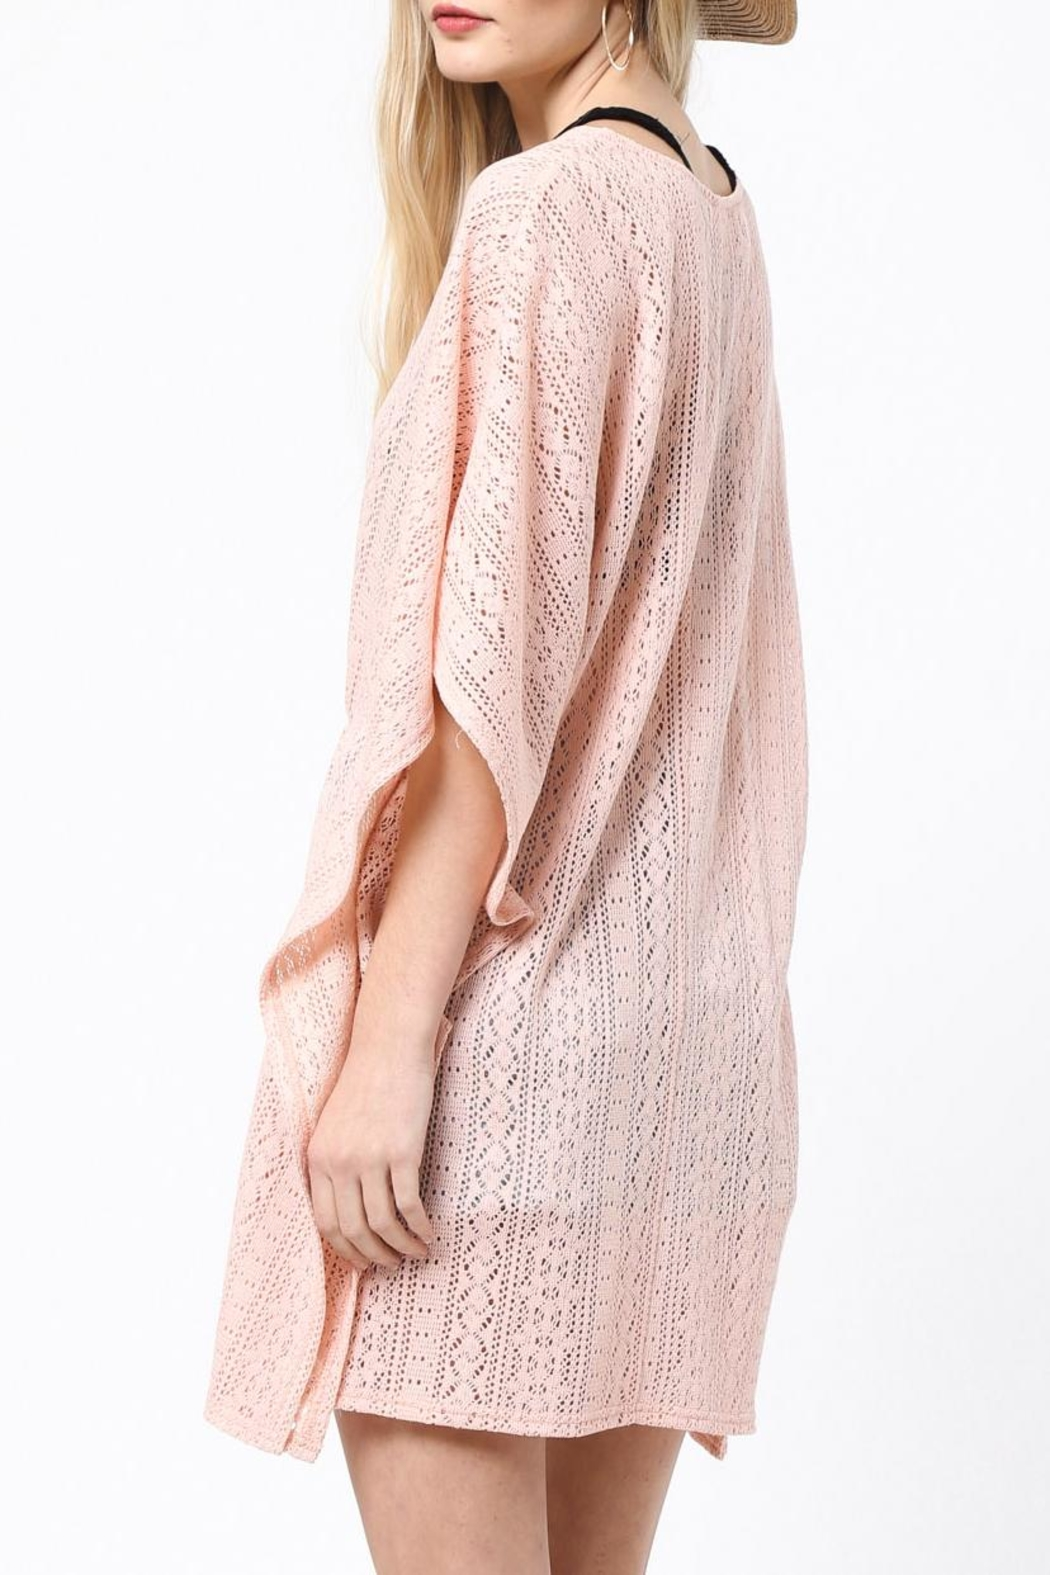 LoveRiche Peachy Keen Coverup - Side Cropped Image